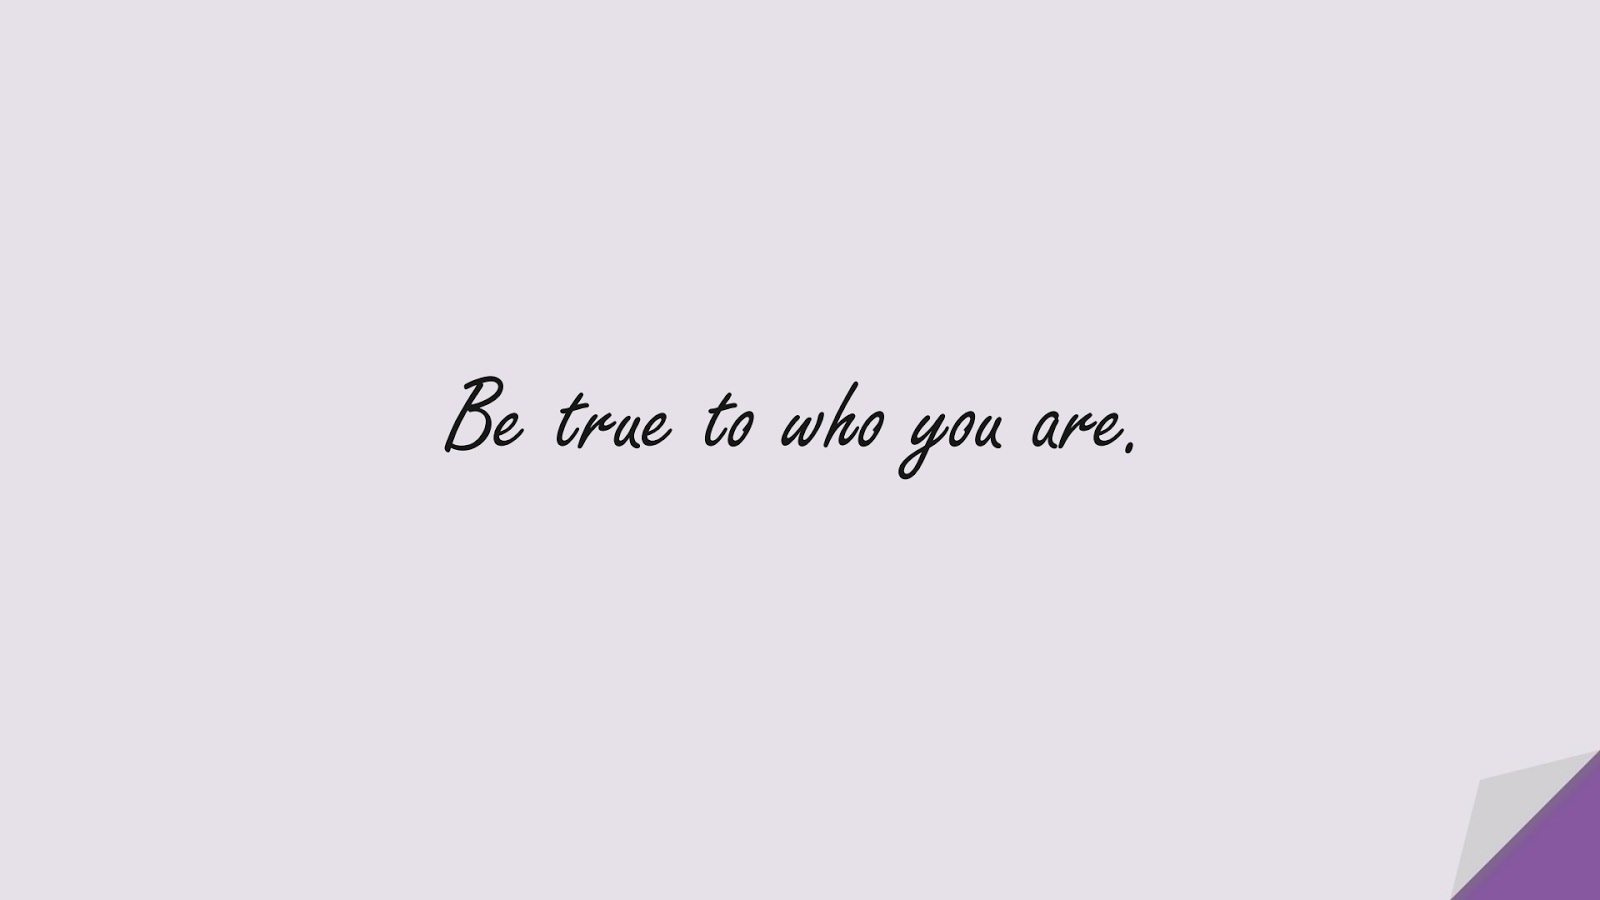 Be true to who you are.FALSE